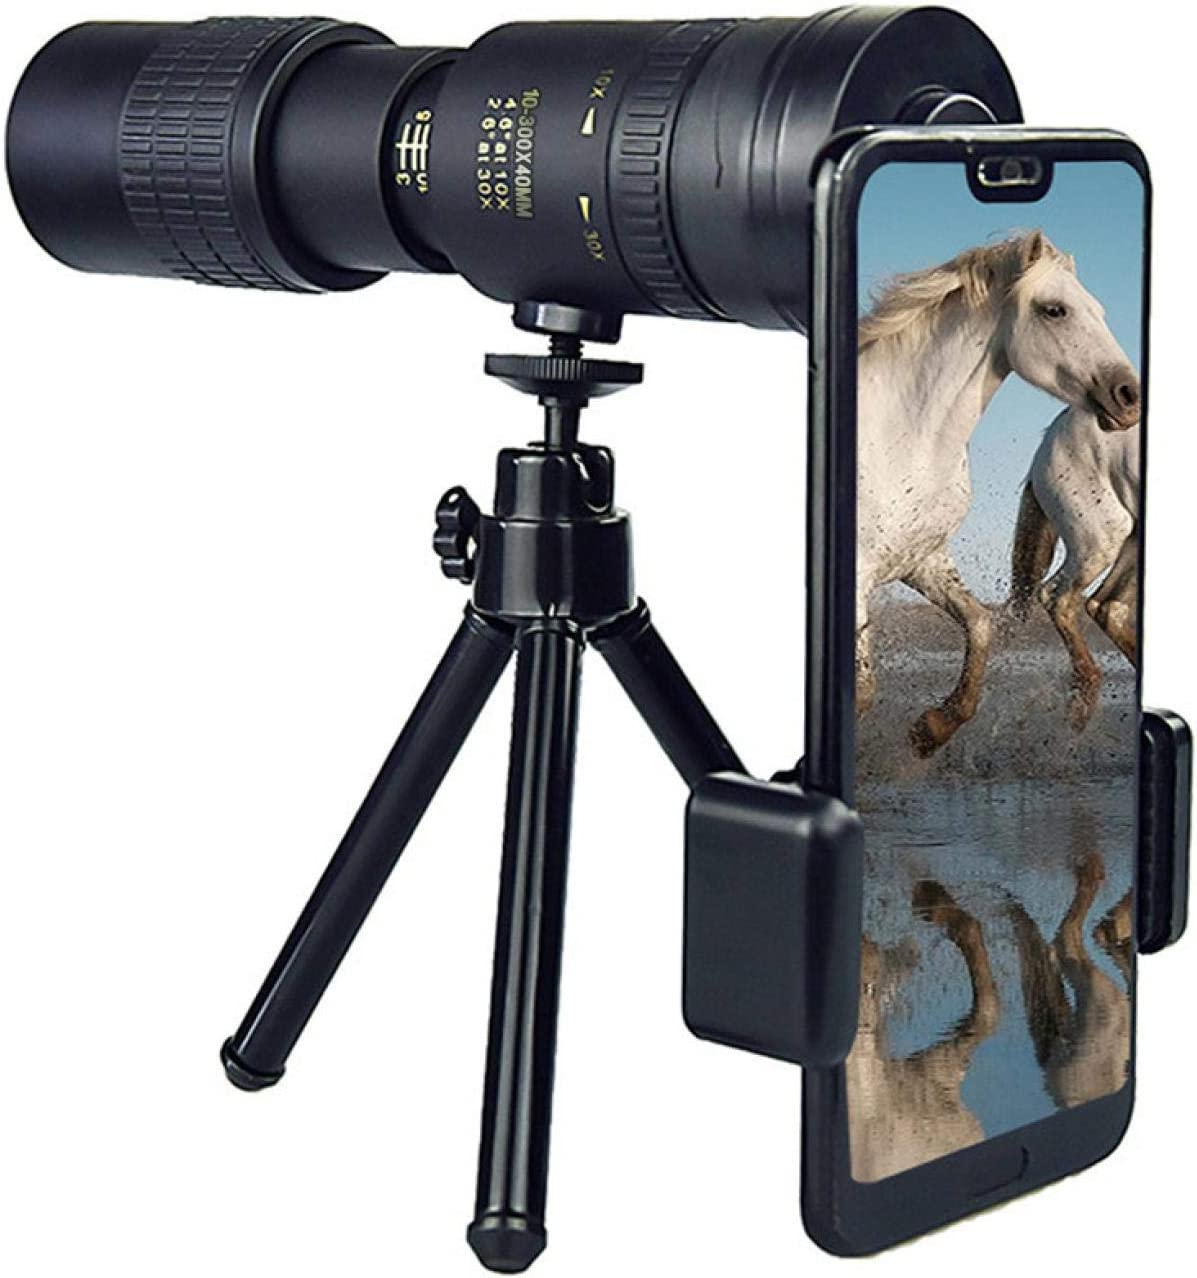 Monocular Telescope Suitable for Cheap Max 63% OFF 10-300x40mm Smartphone 4k Zoom